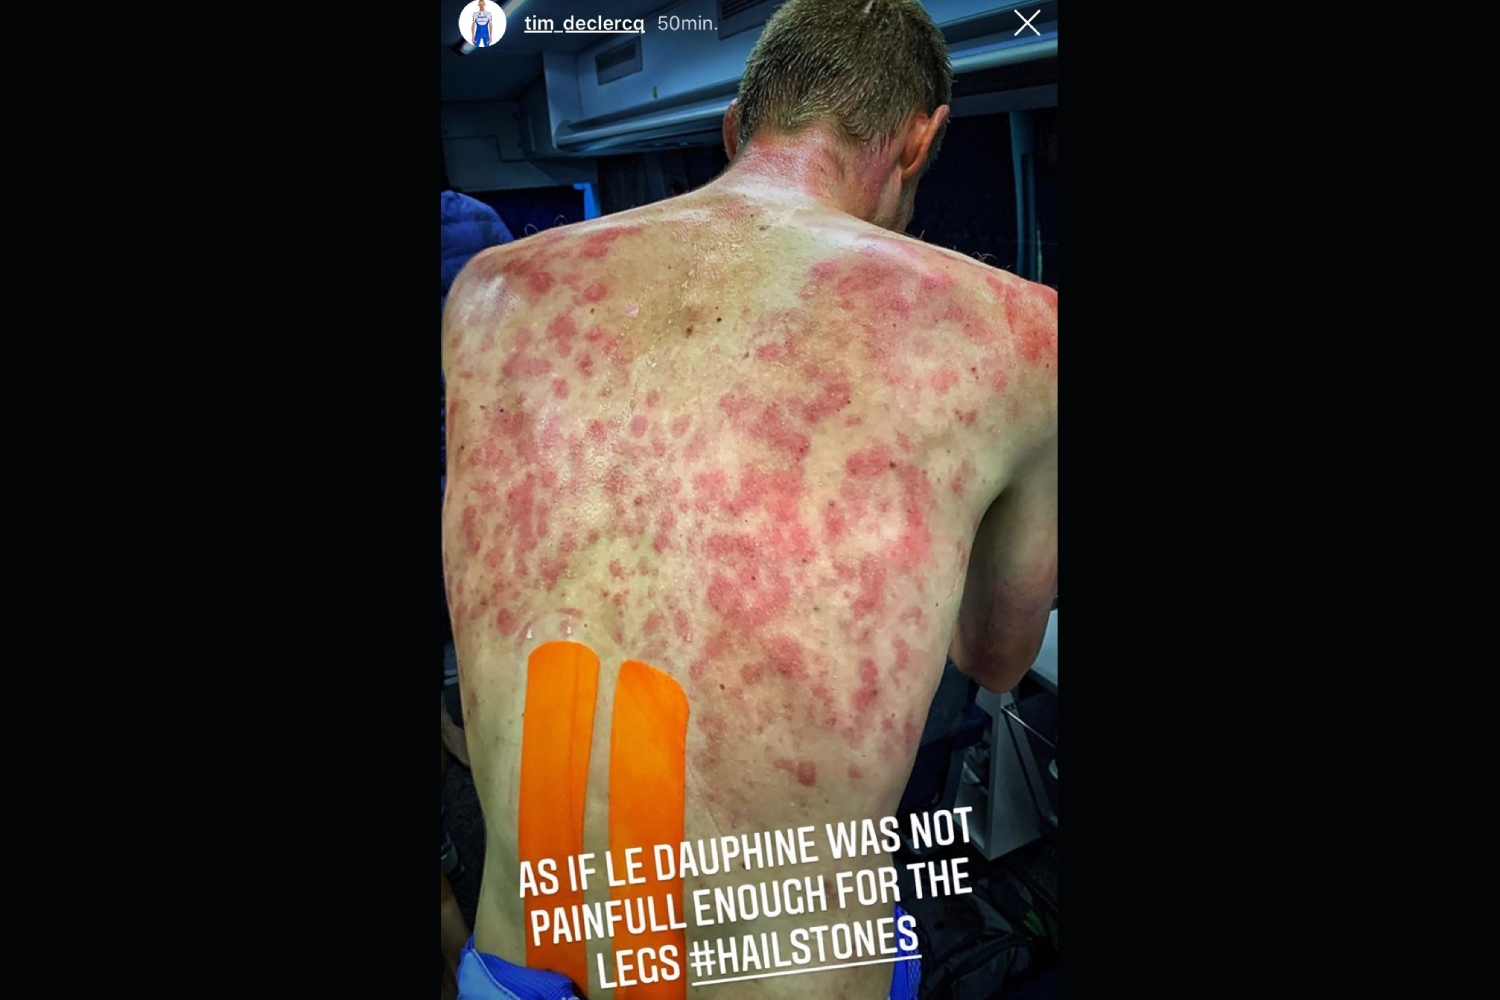 Tim Declercq's back after being hit by the Dauphine hailstones